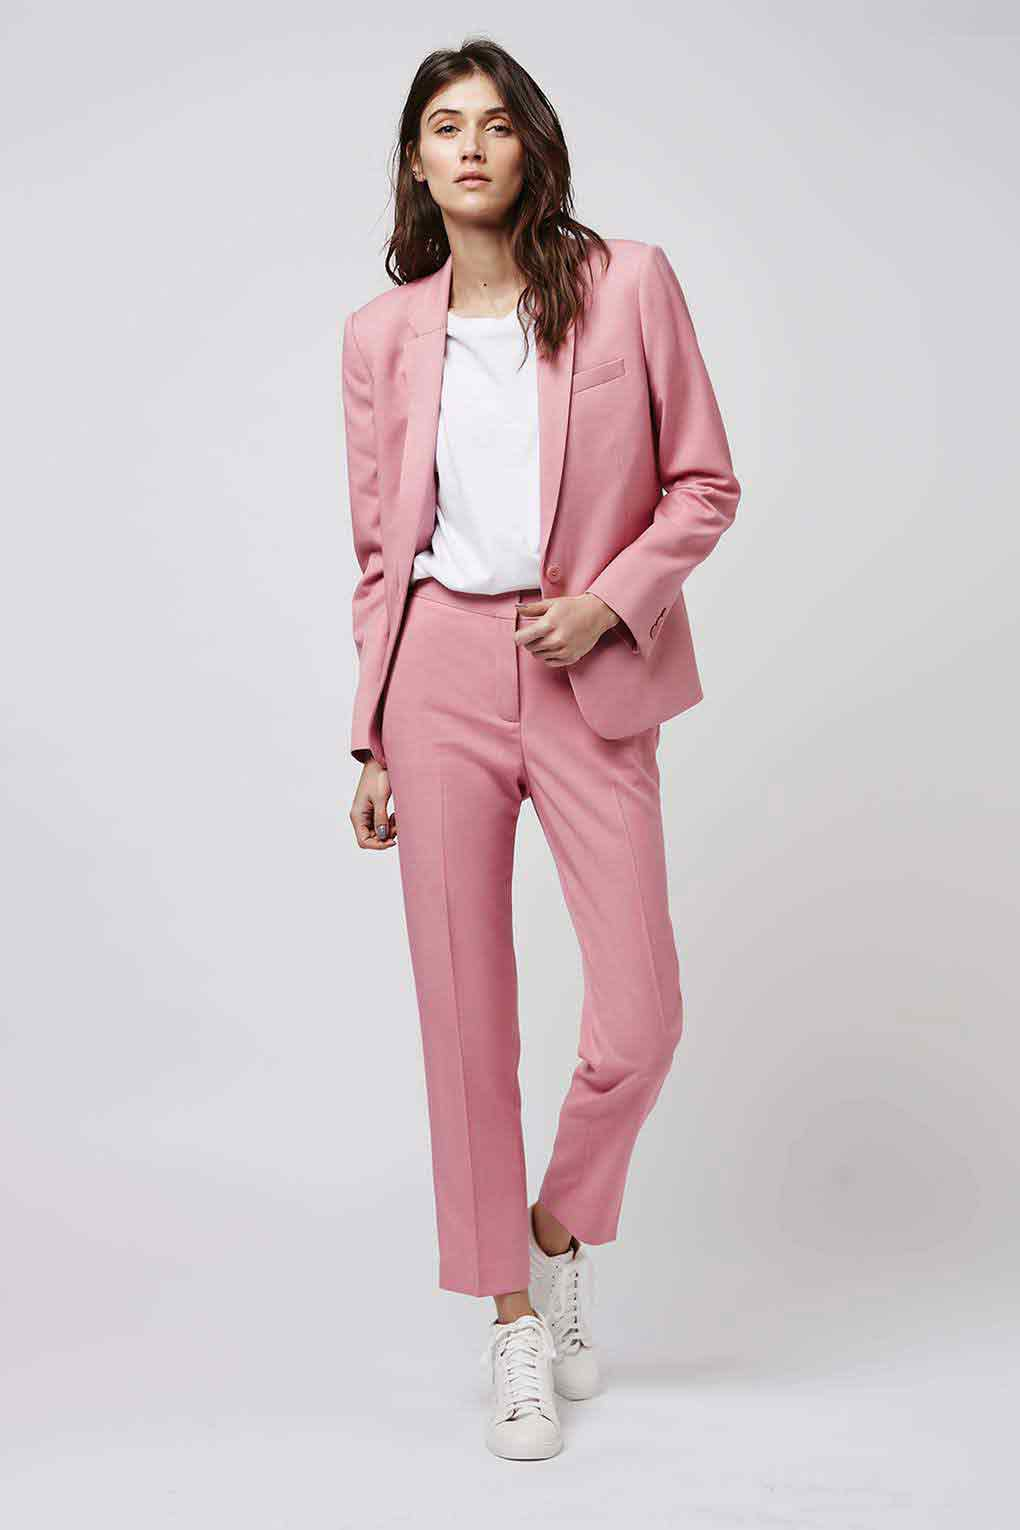 Latest pink and white business suit for ladies